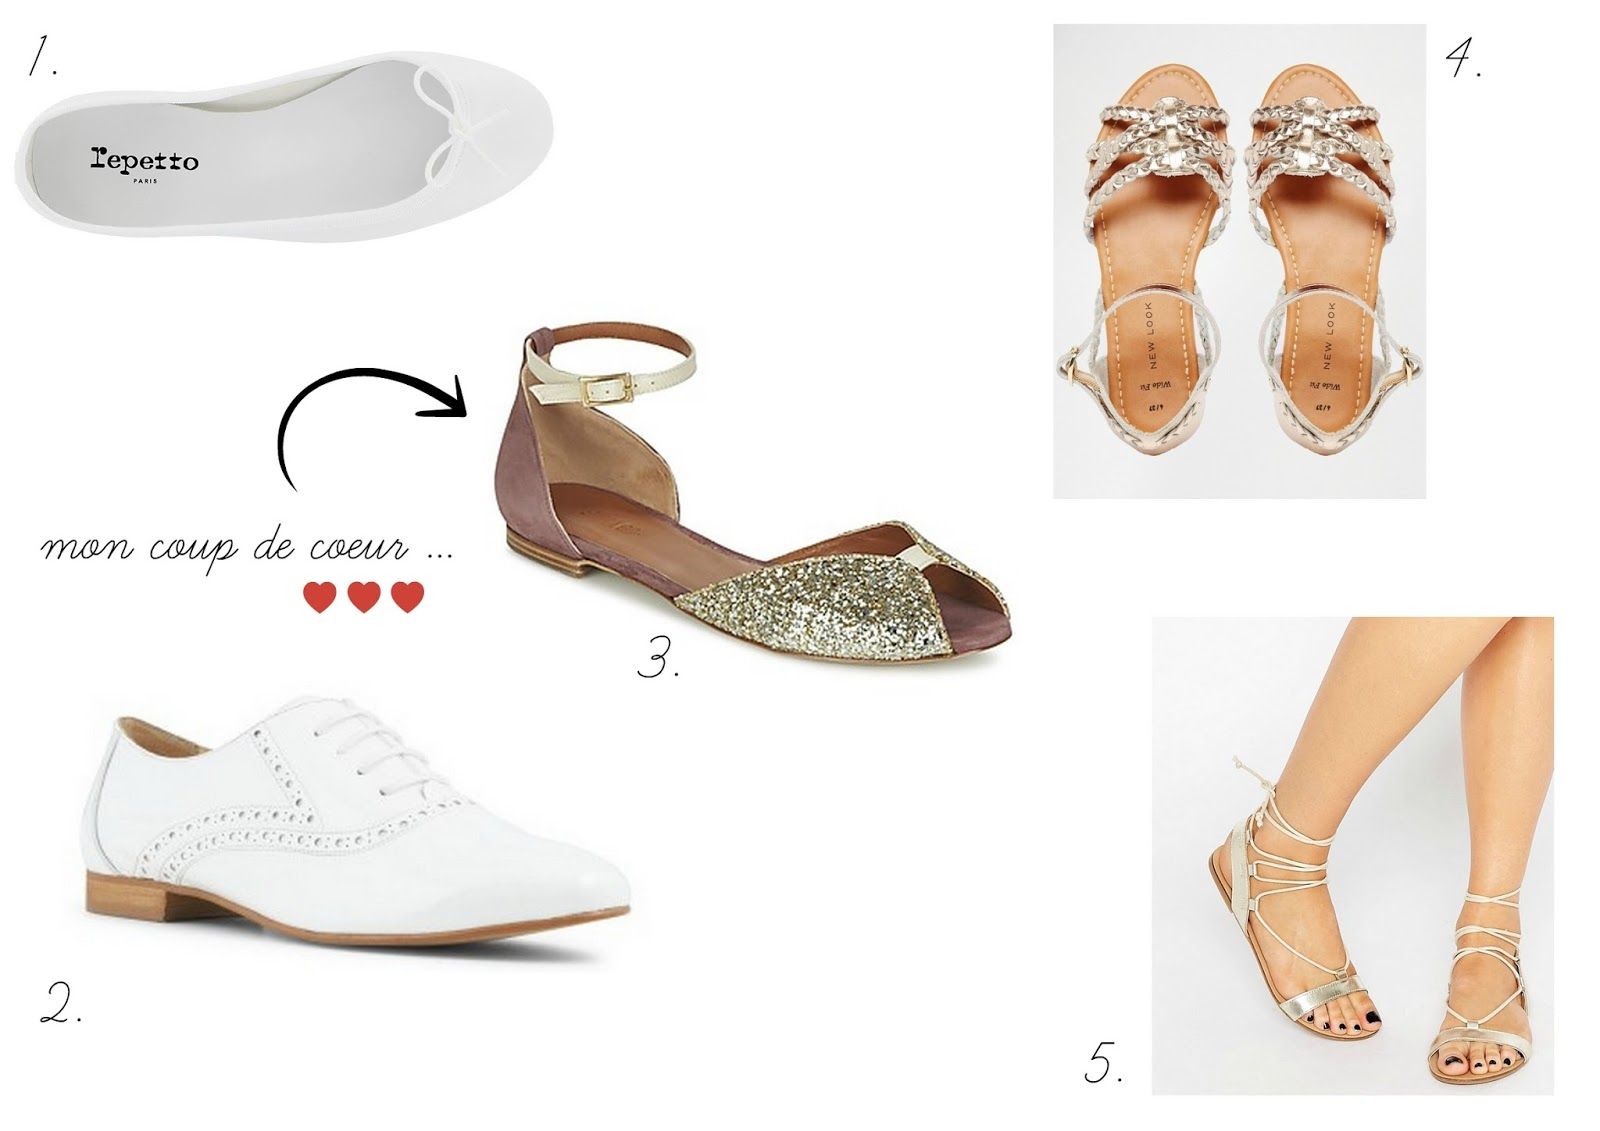 { Mode } On ose  Les chaussures plates pour son mariage